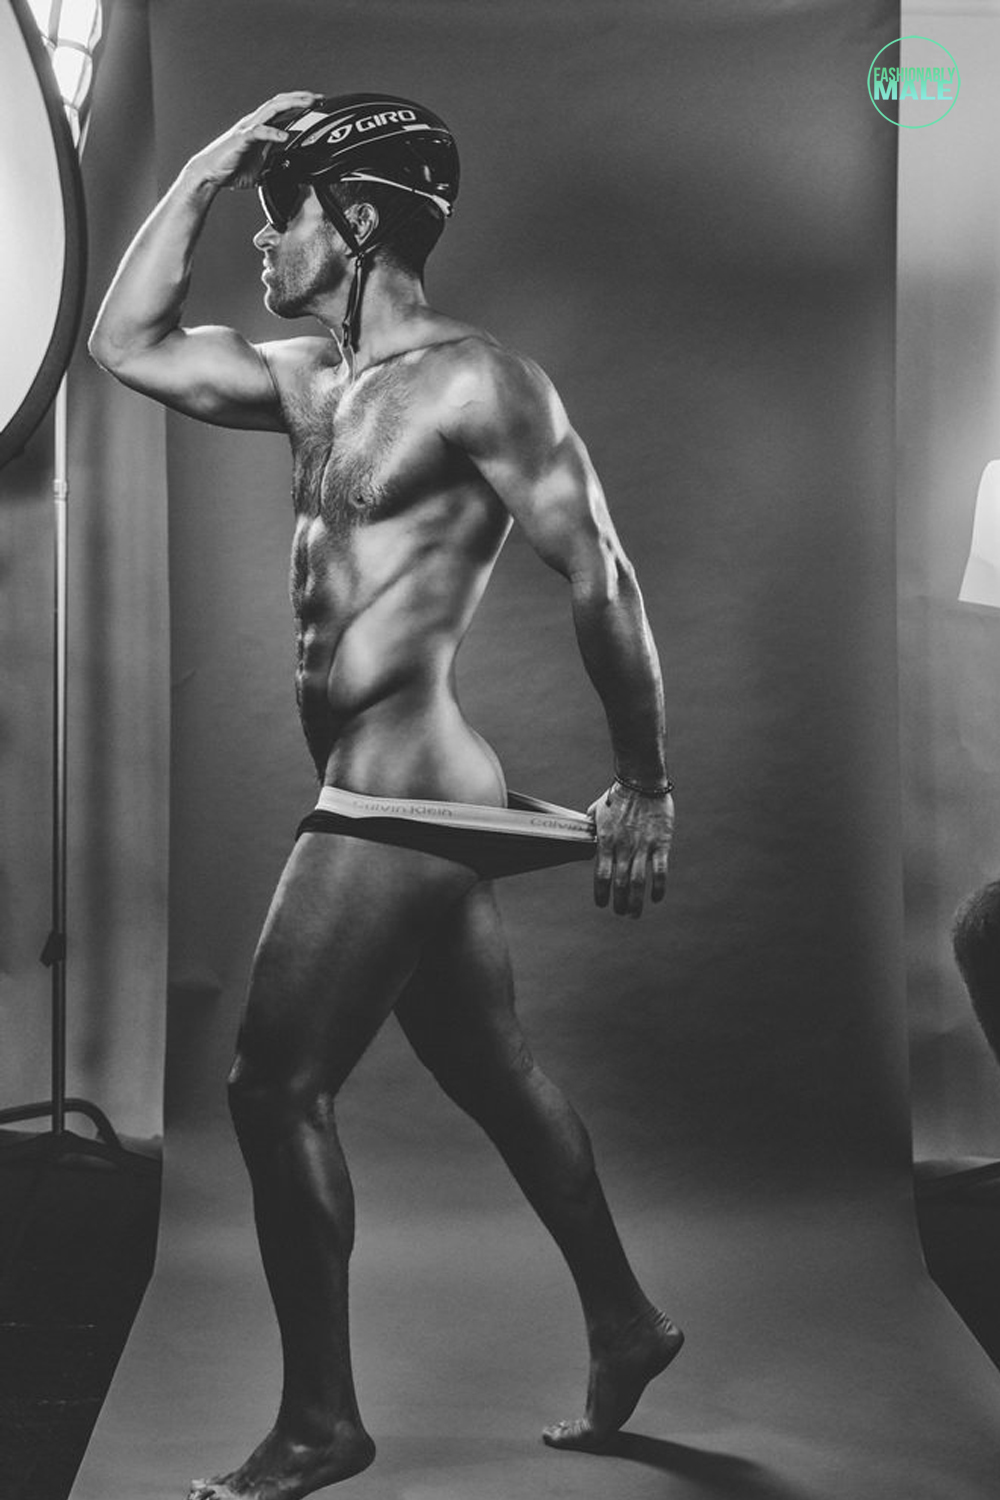 Josh Owens by Sean Micah for Fashionably Male7